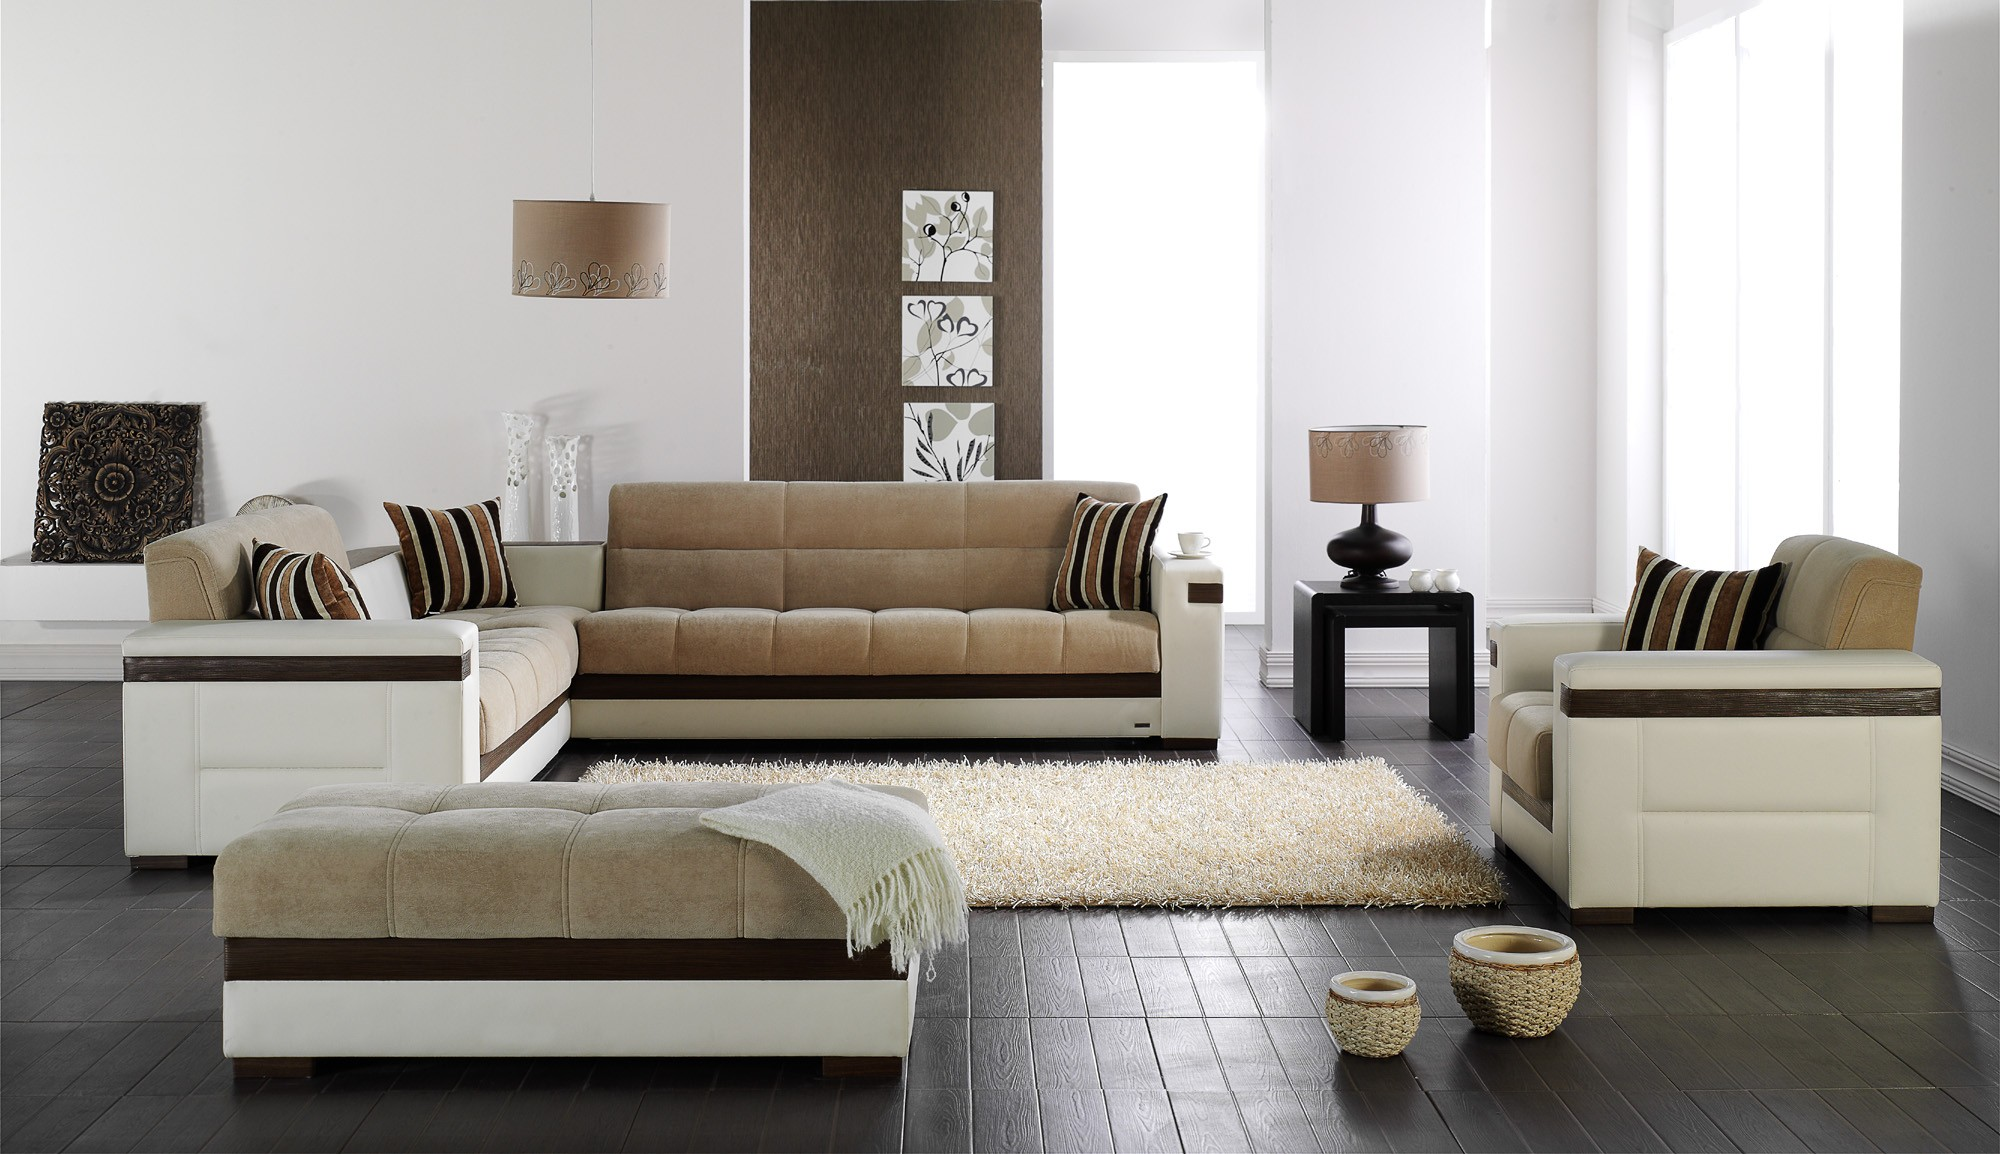 latest sofa set designs for living room furniture ideas  hgnvcom - view in gallery stunning design of the living room areas with brown woodenfloor and white wall ideas with